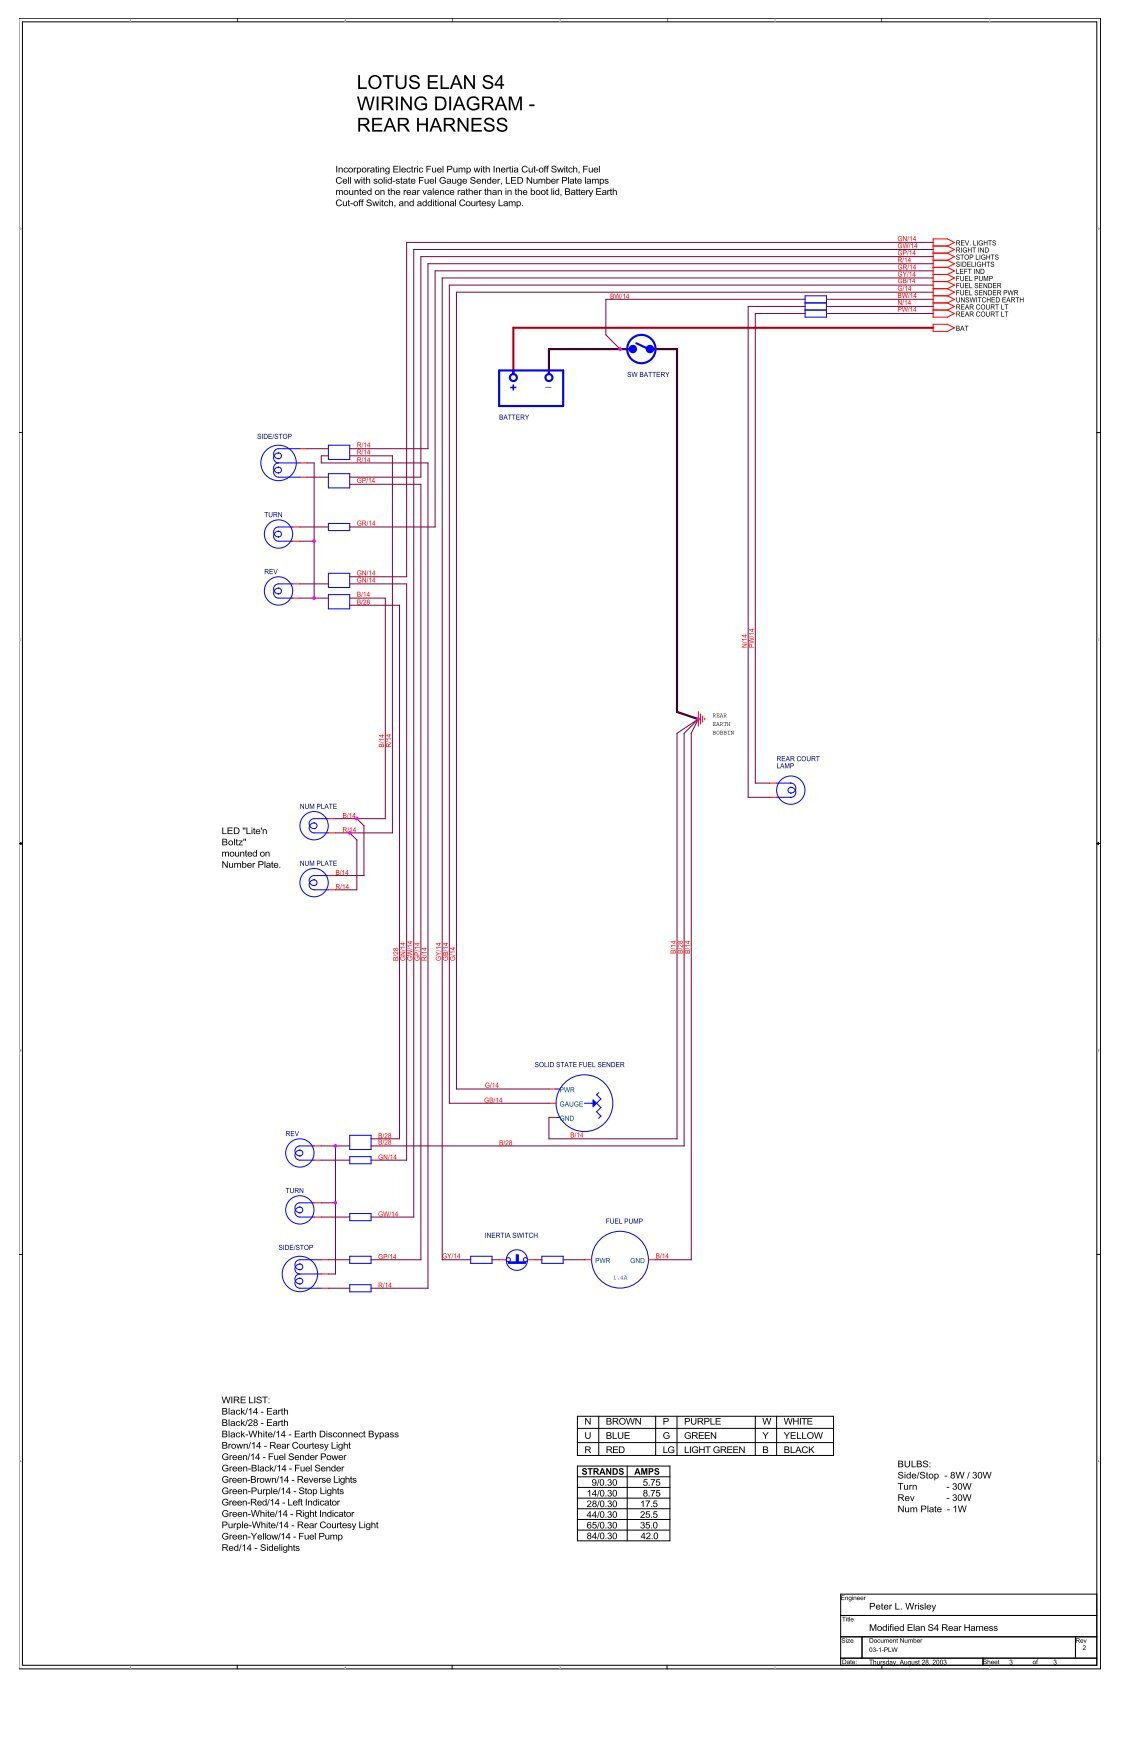 Daewoo Nubira Electrical Diagram Mazda Cx 9 Stereo Wiring Diagram